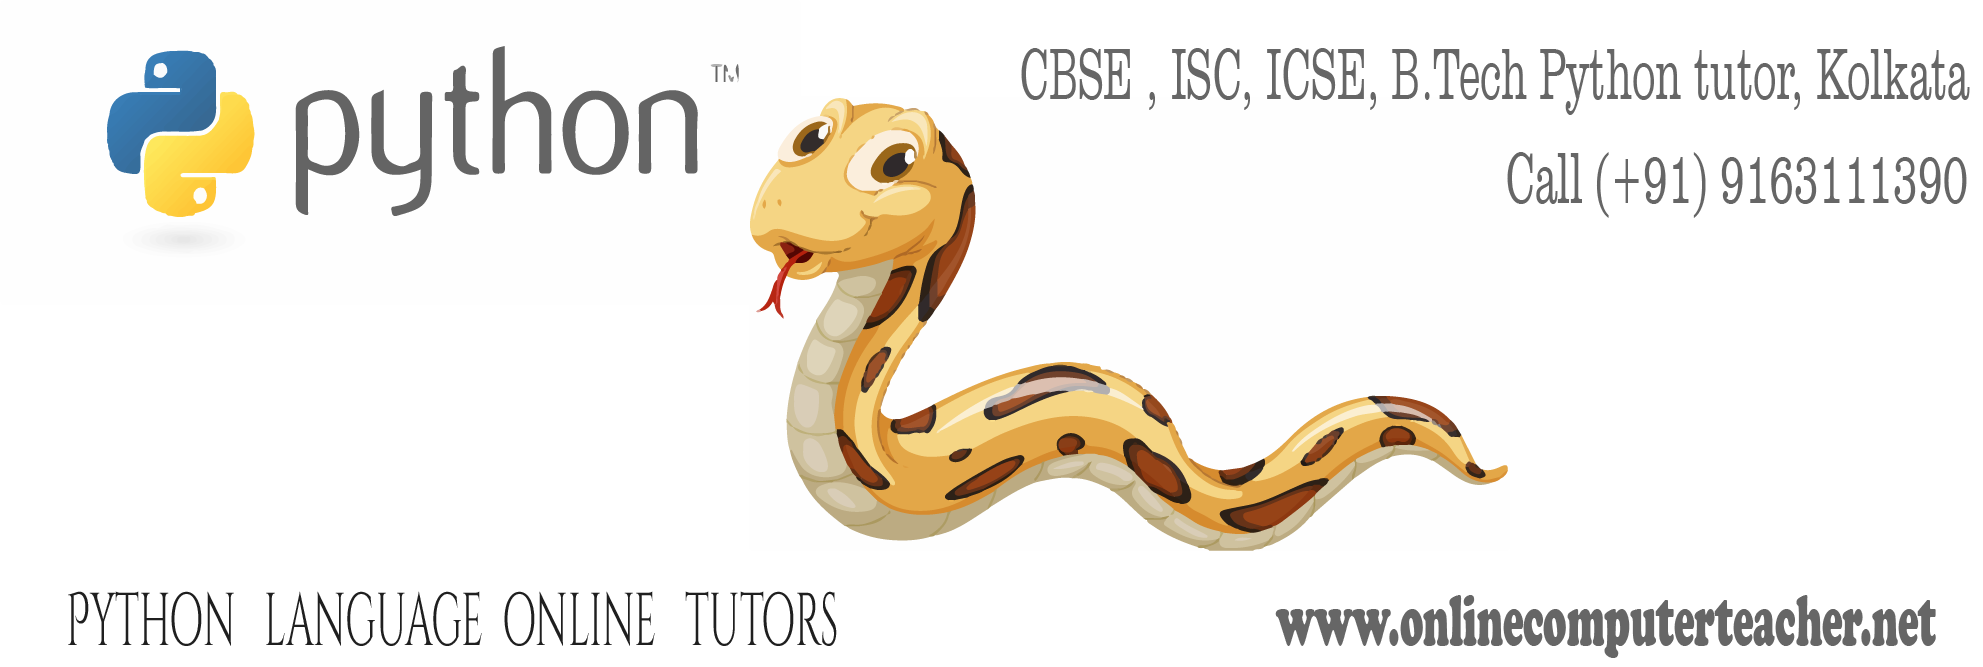 Python tutor Kolkata, Computer Science CBSE tutor onlinecomputerteacher.net